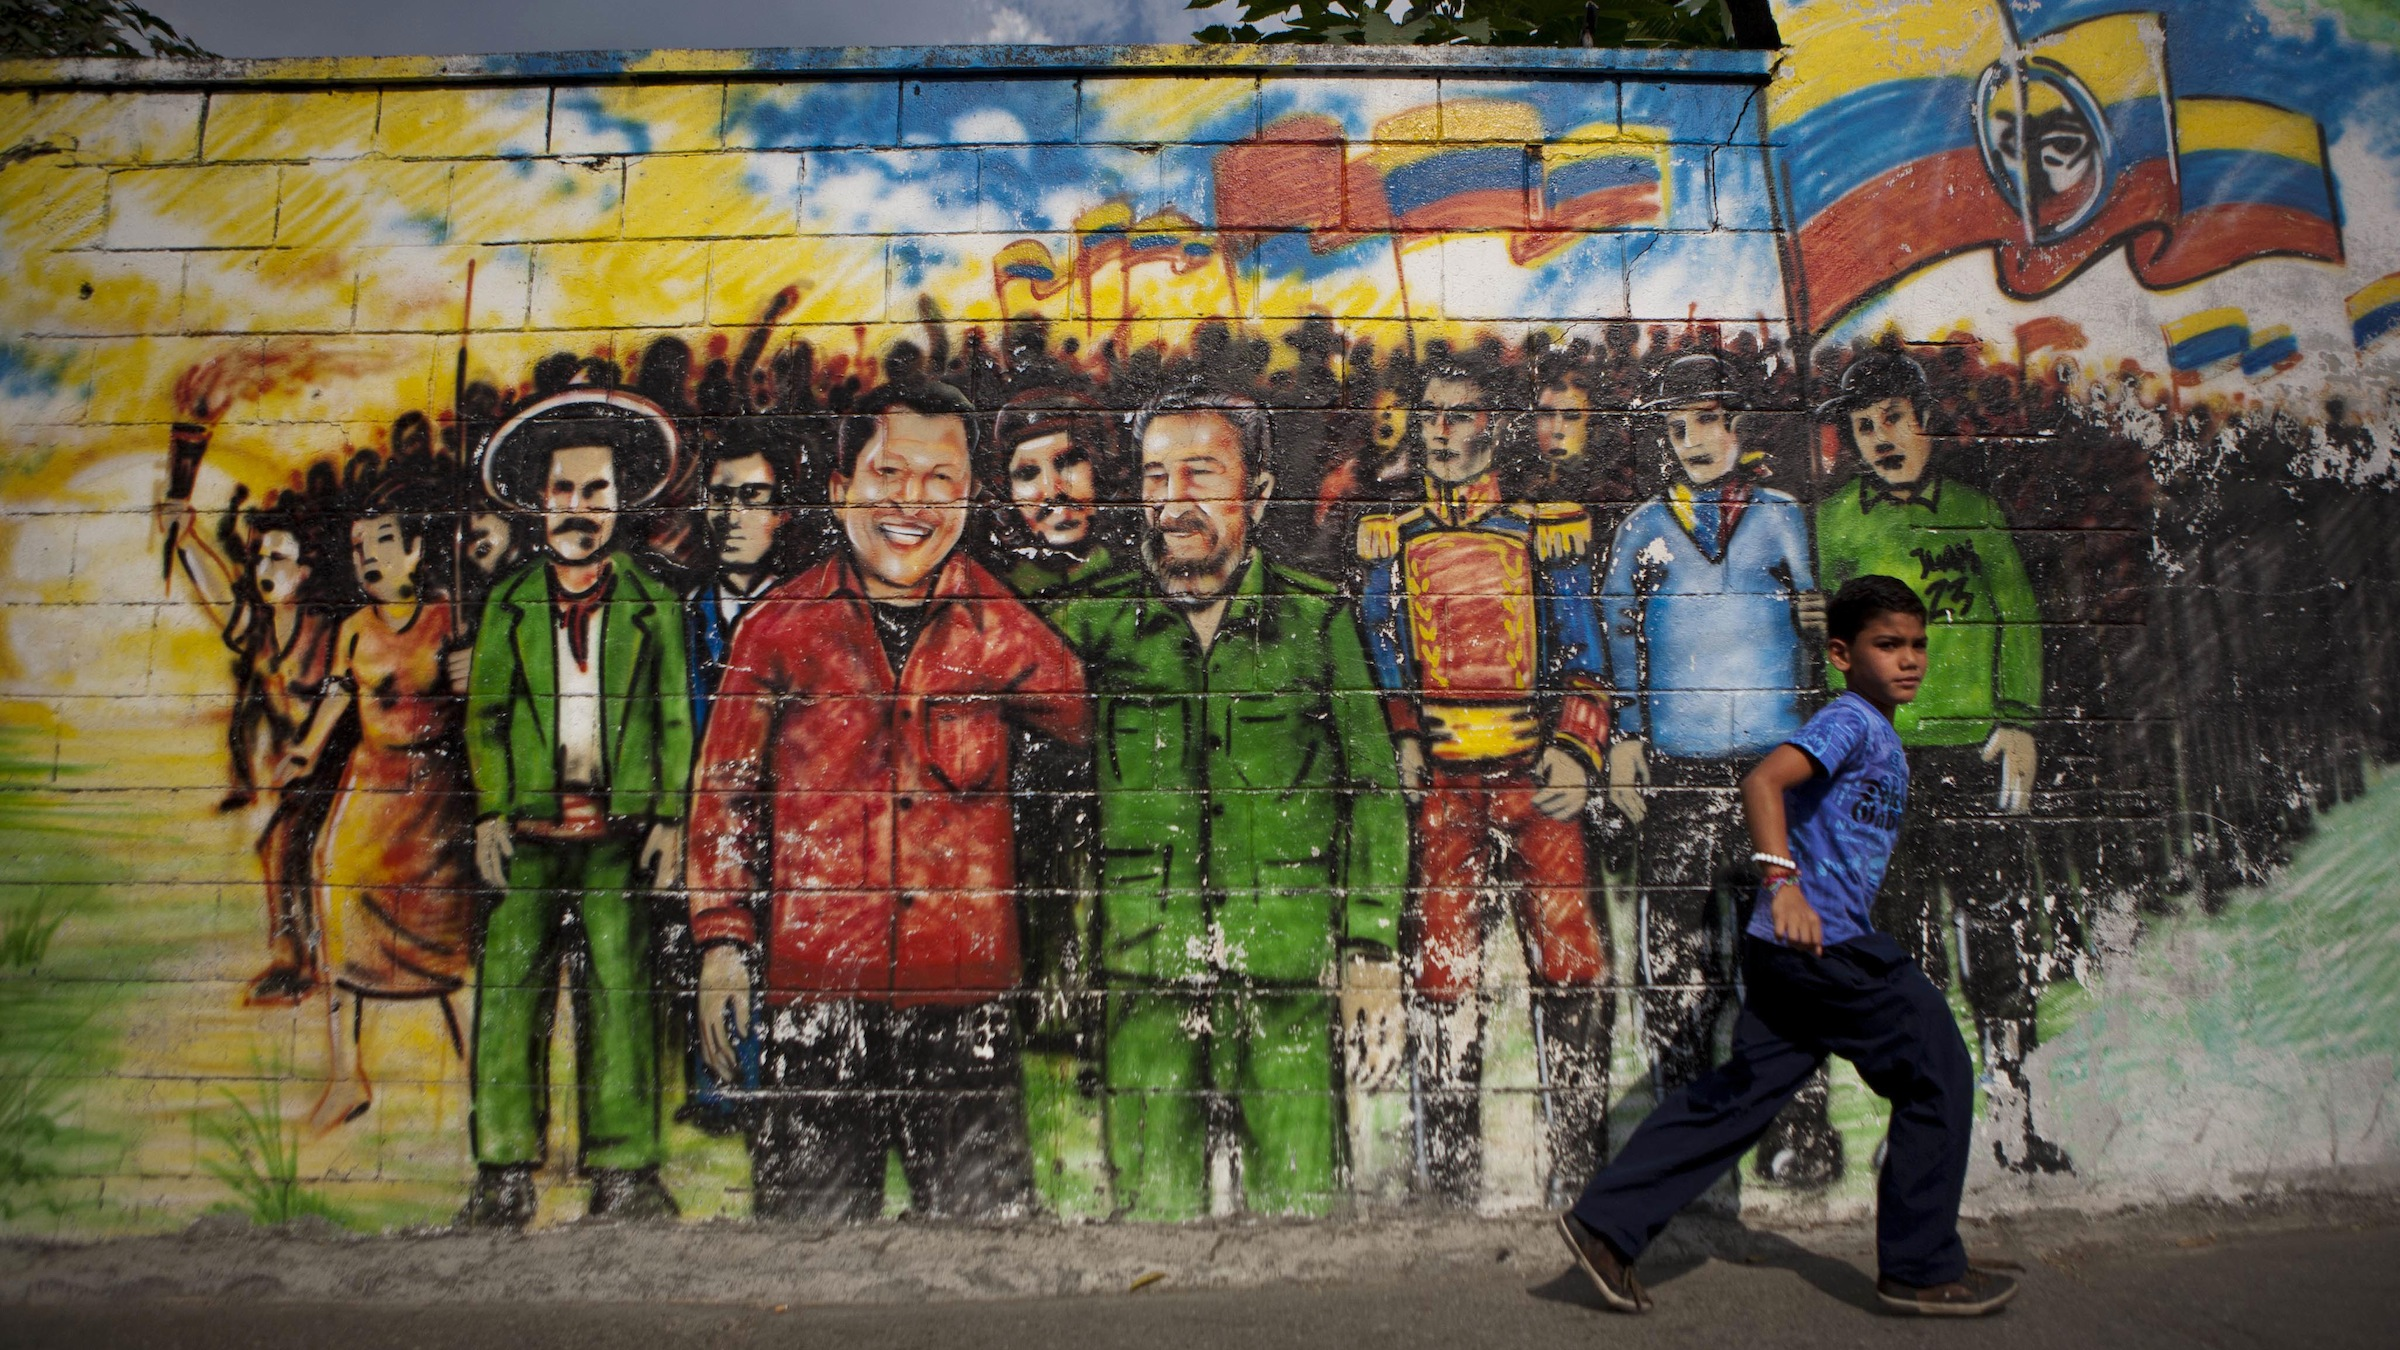 Hugo Chavez and Fidel Castro on a mural in Cuba